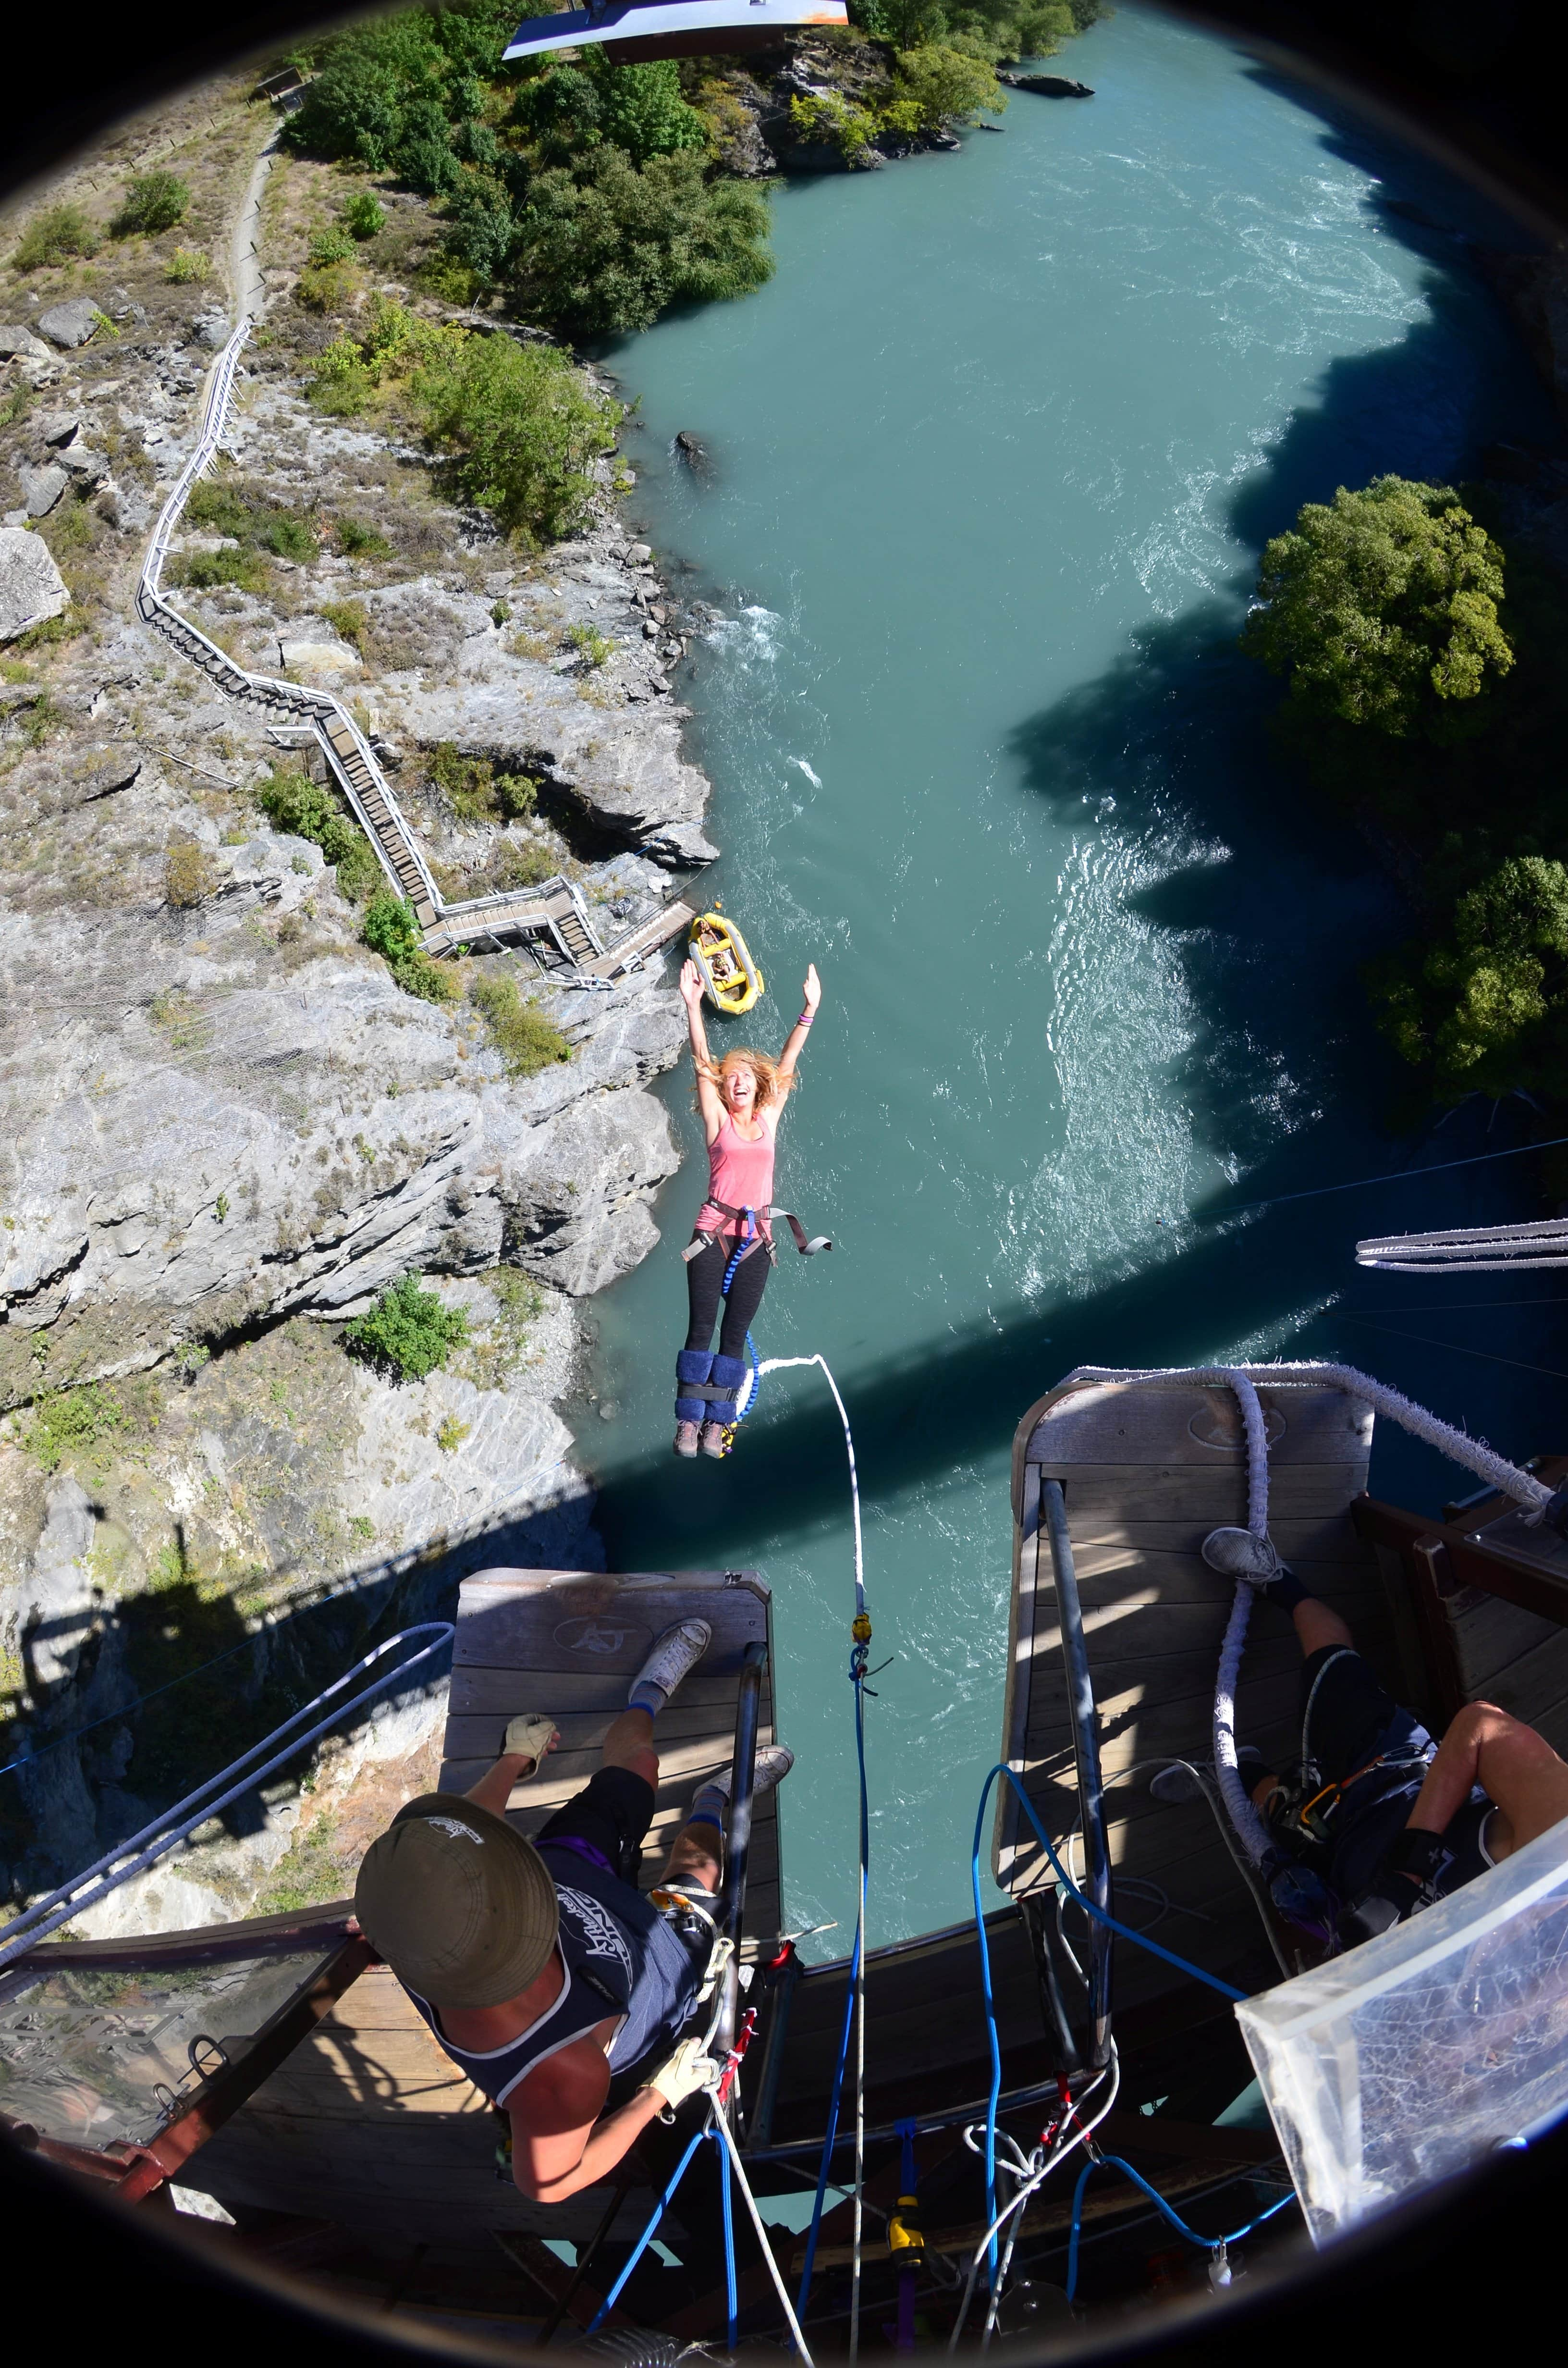 The World's First Commercial Bungy Jump? Yes please! Located in Arrowtown, New Zealand, AJ Hackett's Bungy Jump must not be missed! Read more at www.thefivefoottraveler.com